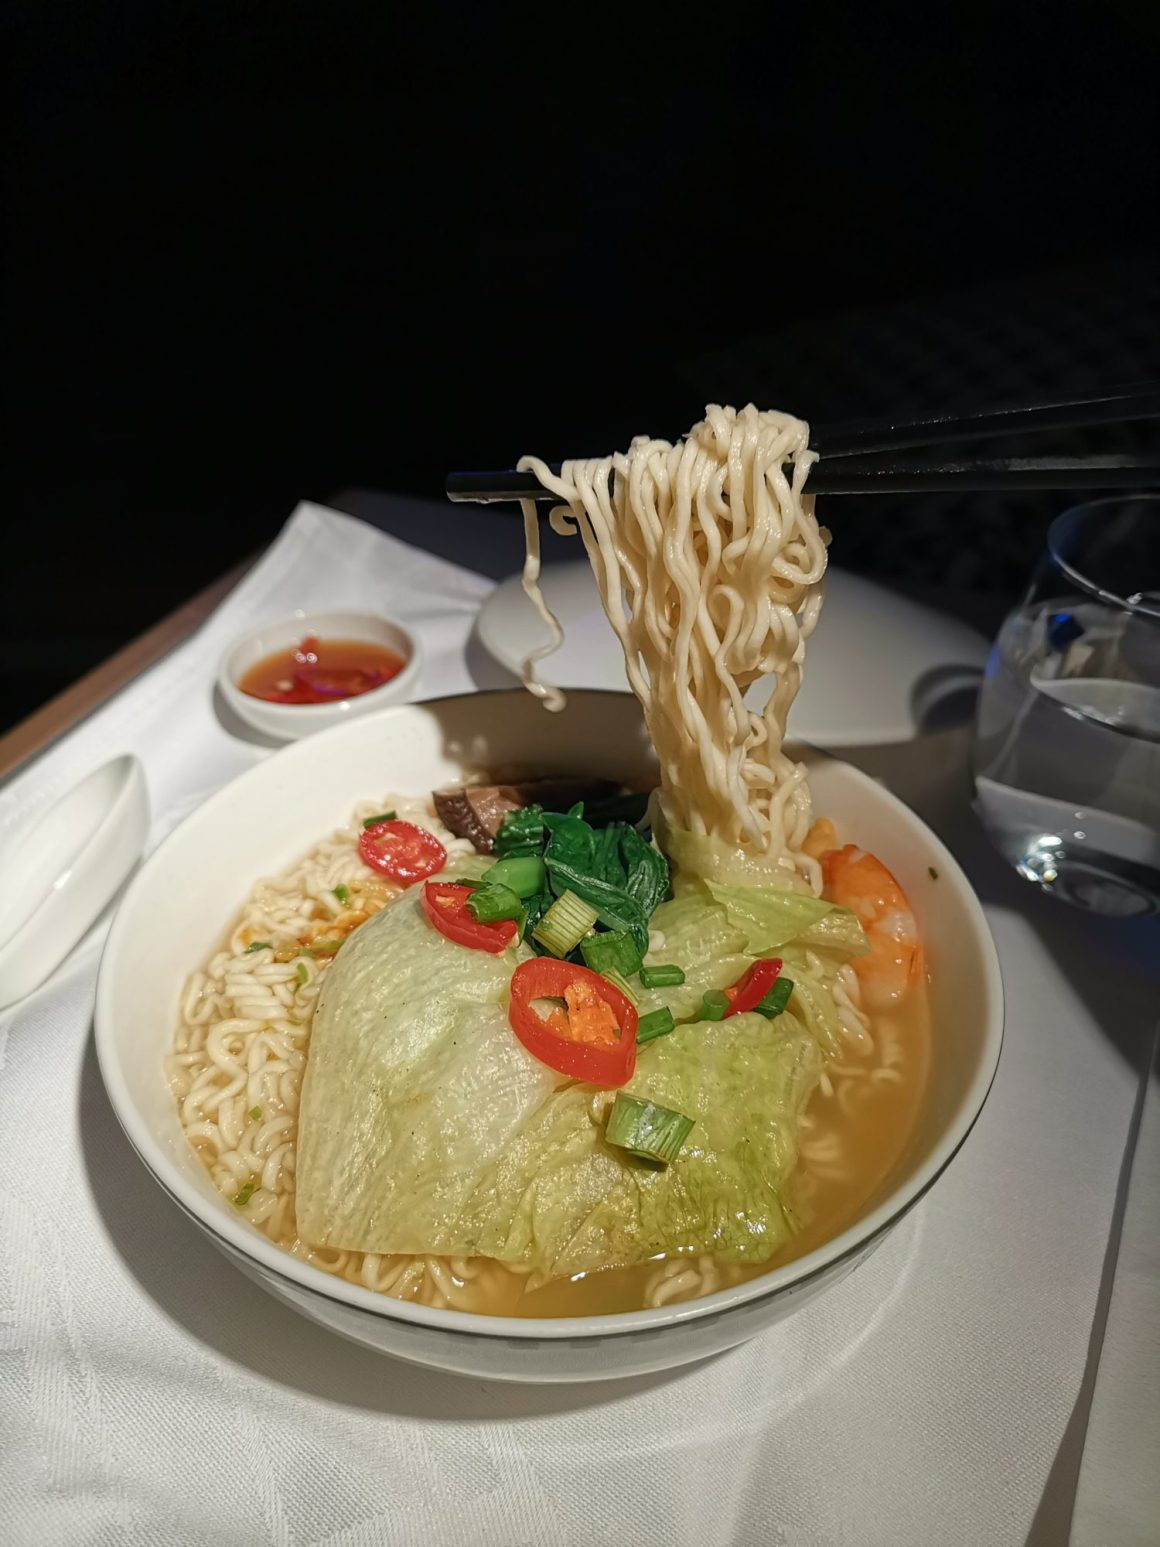 Singapore Airlines Business Class SQ334 From Singapore To Paris – Seafood Noodles